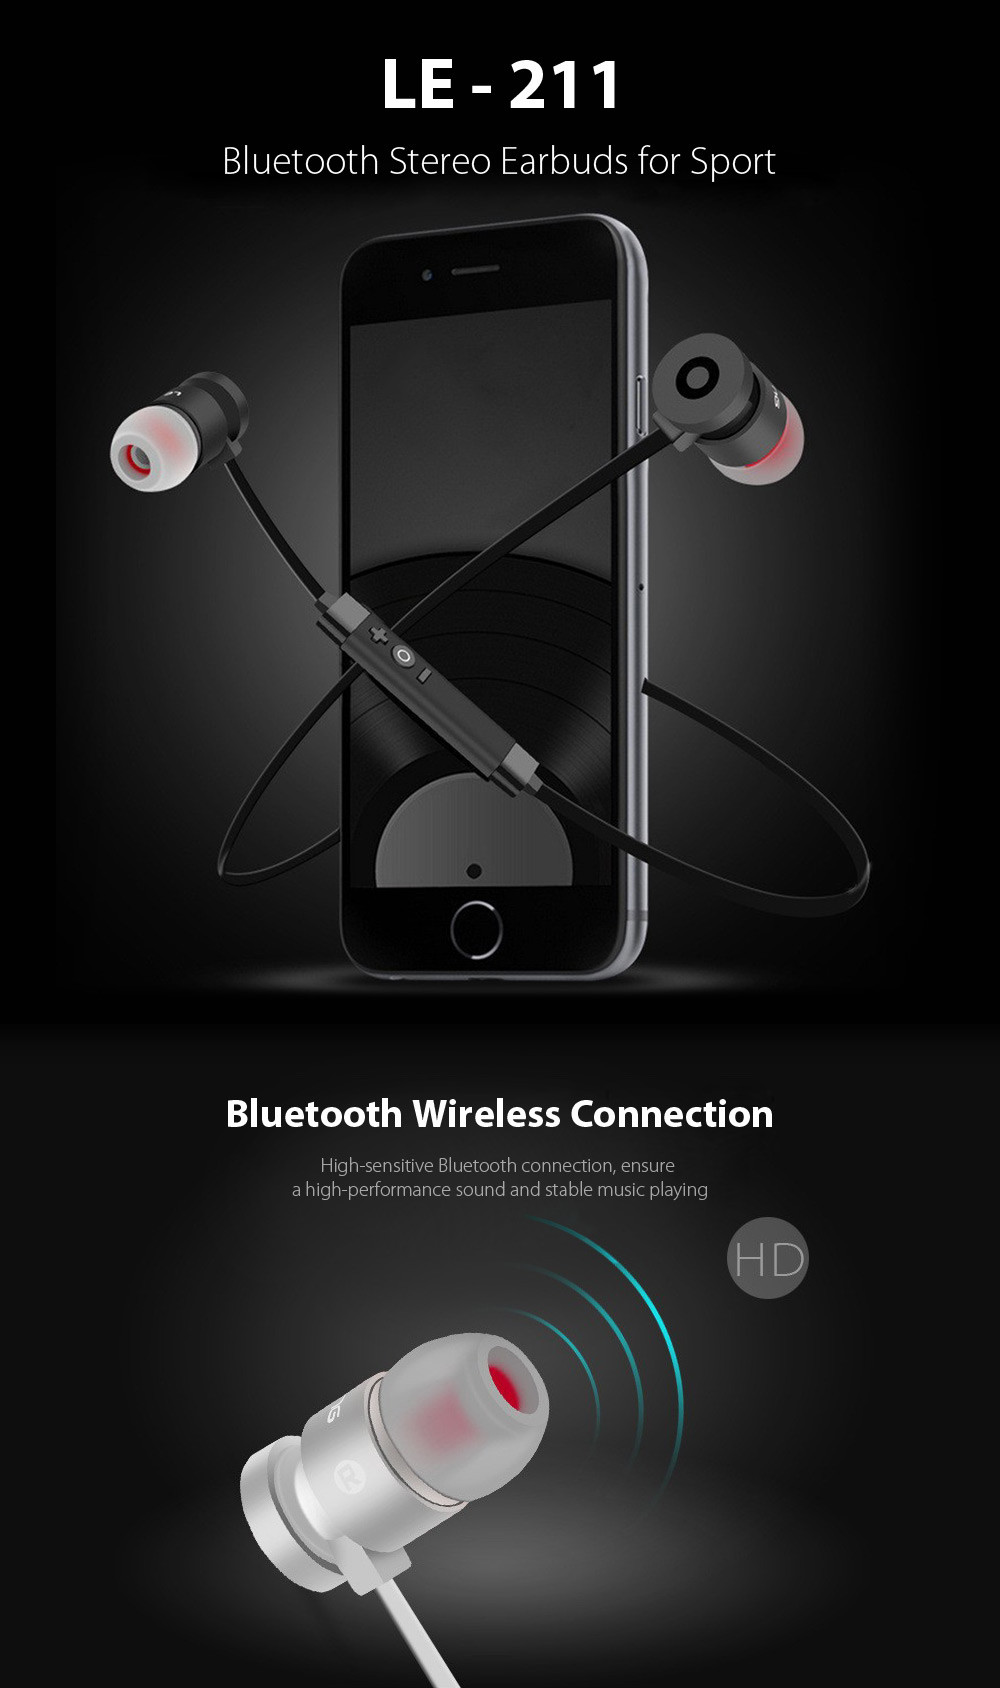 LE - 211 Bluetooth Stereo Earbuds for Sport